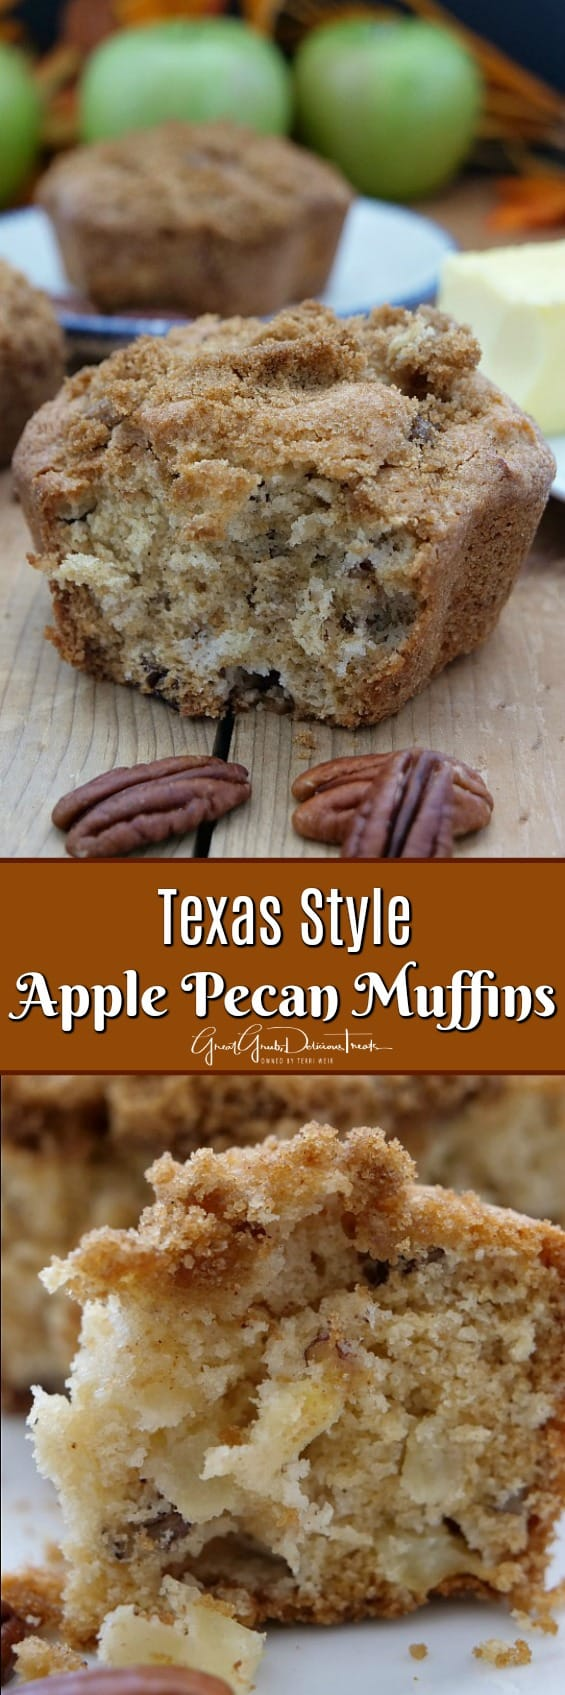 Texas Style Apple Pecan Muffins